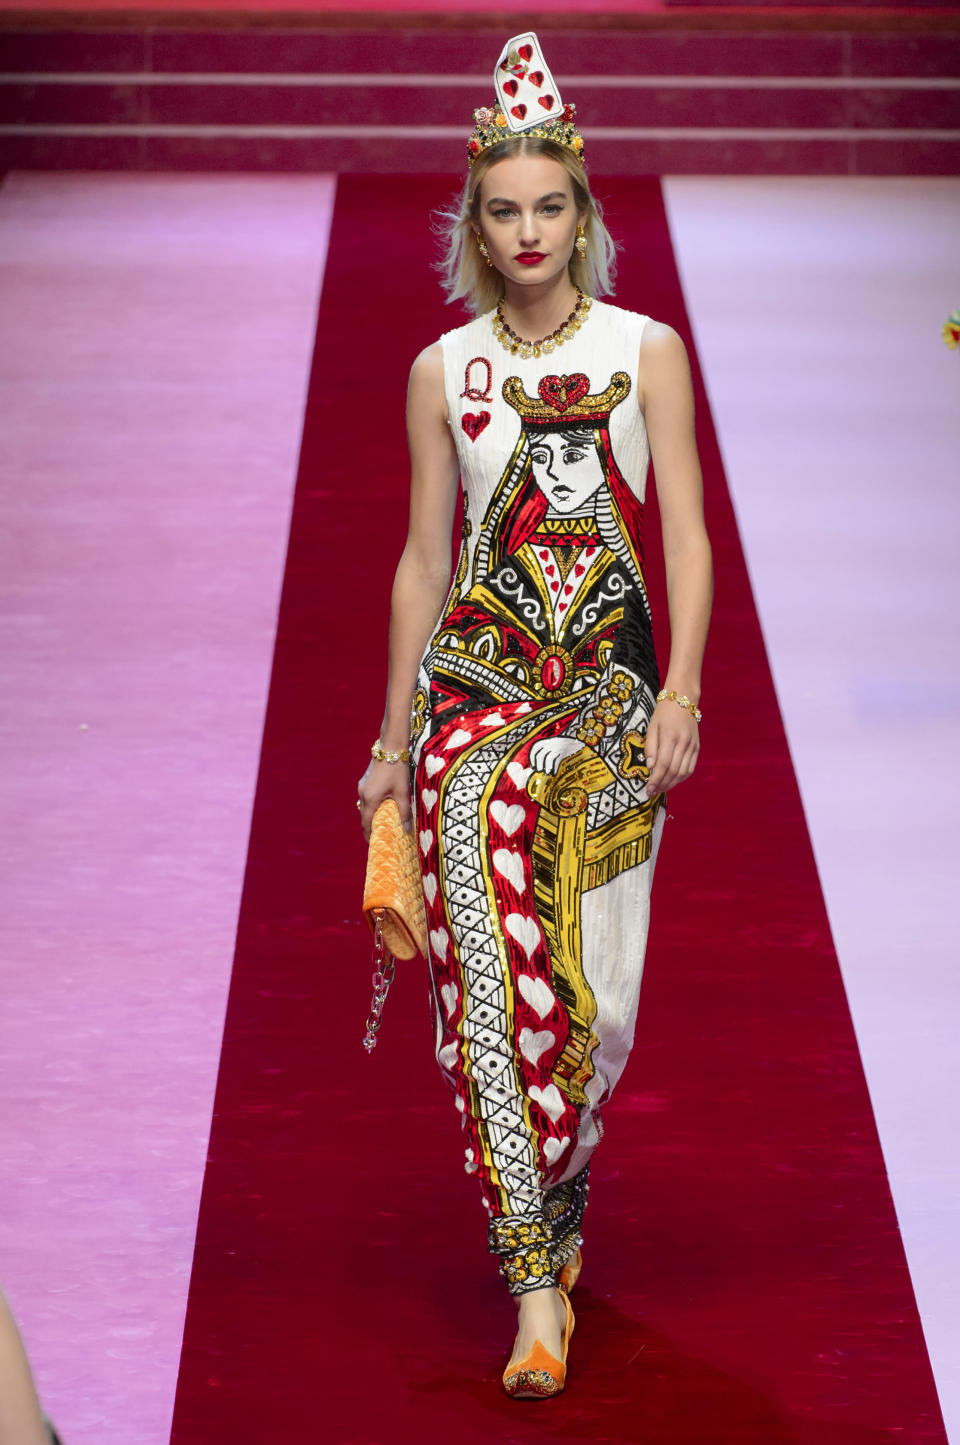 "<p><i>""Queen of Hearts"" sequined, embroidered dress from the SS18 Dolce & Gabbana collection. (Photo: ImaxTree) </i></p>"